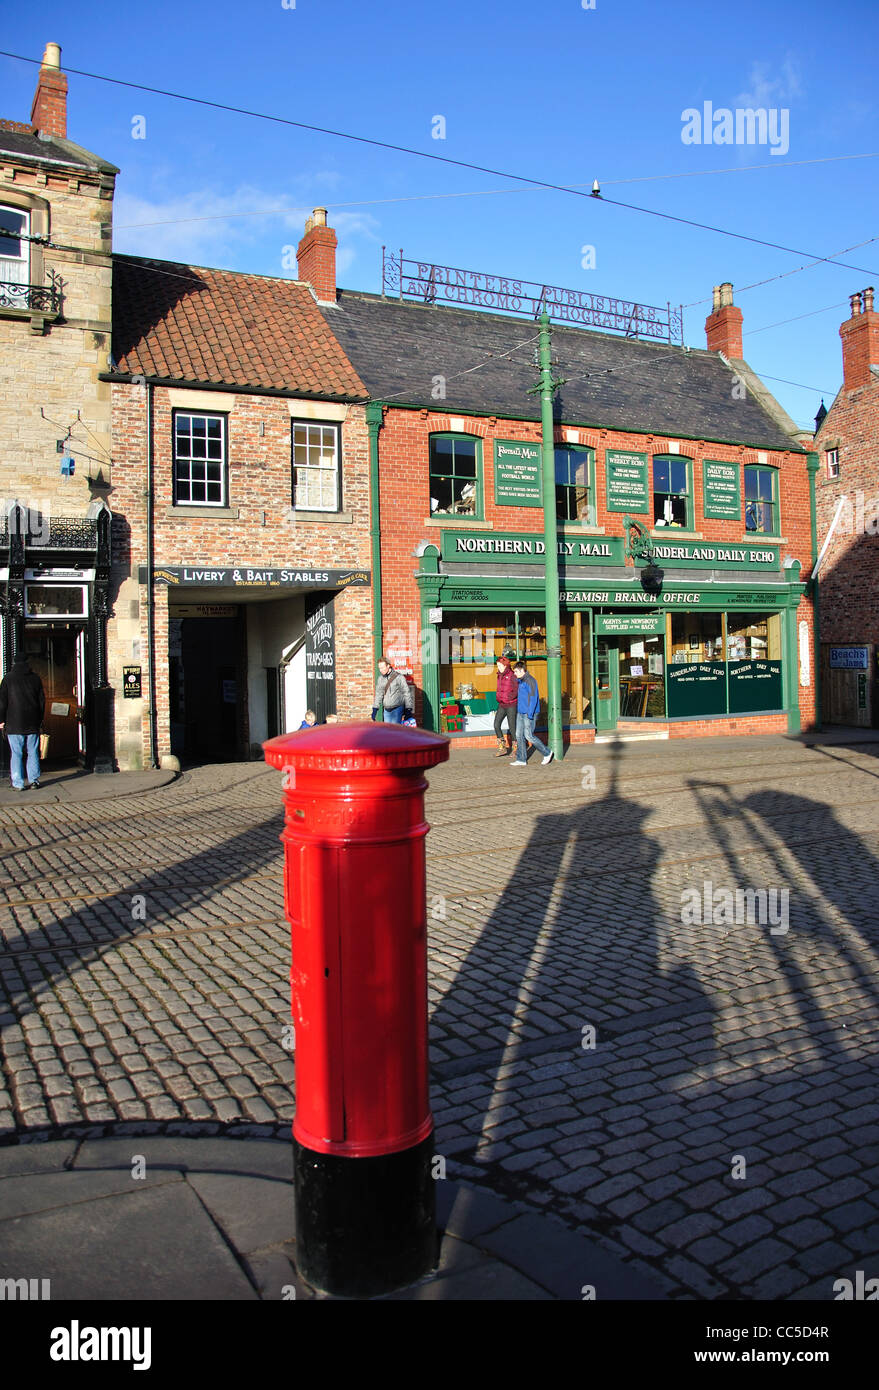 Edwardian Town, Beamish, The North of England Open Air Museum, near Stanley, County Durham, England, United Kingdom - Stock Image